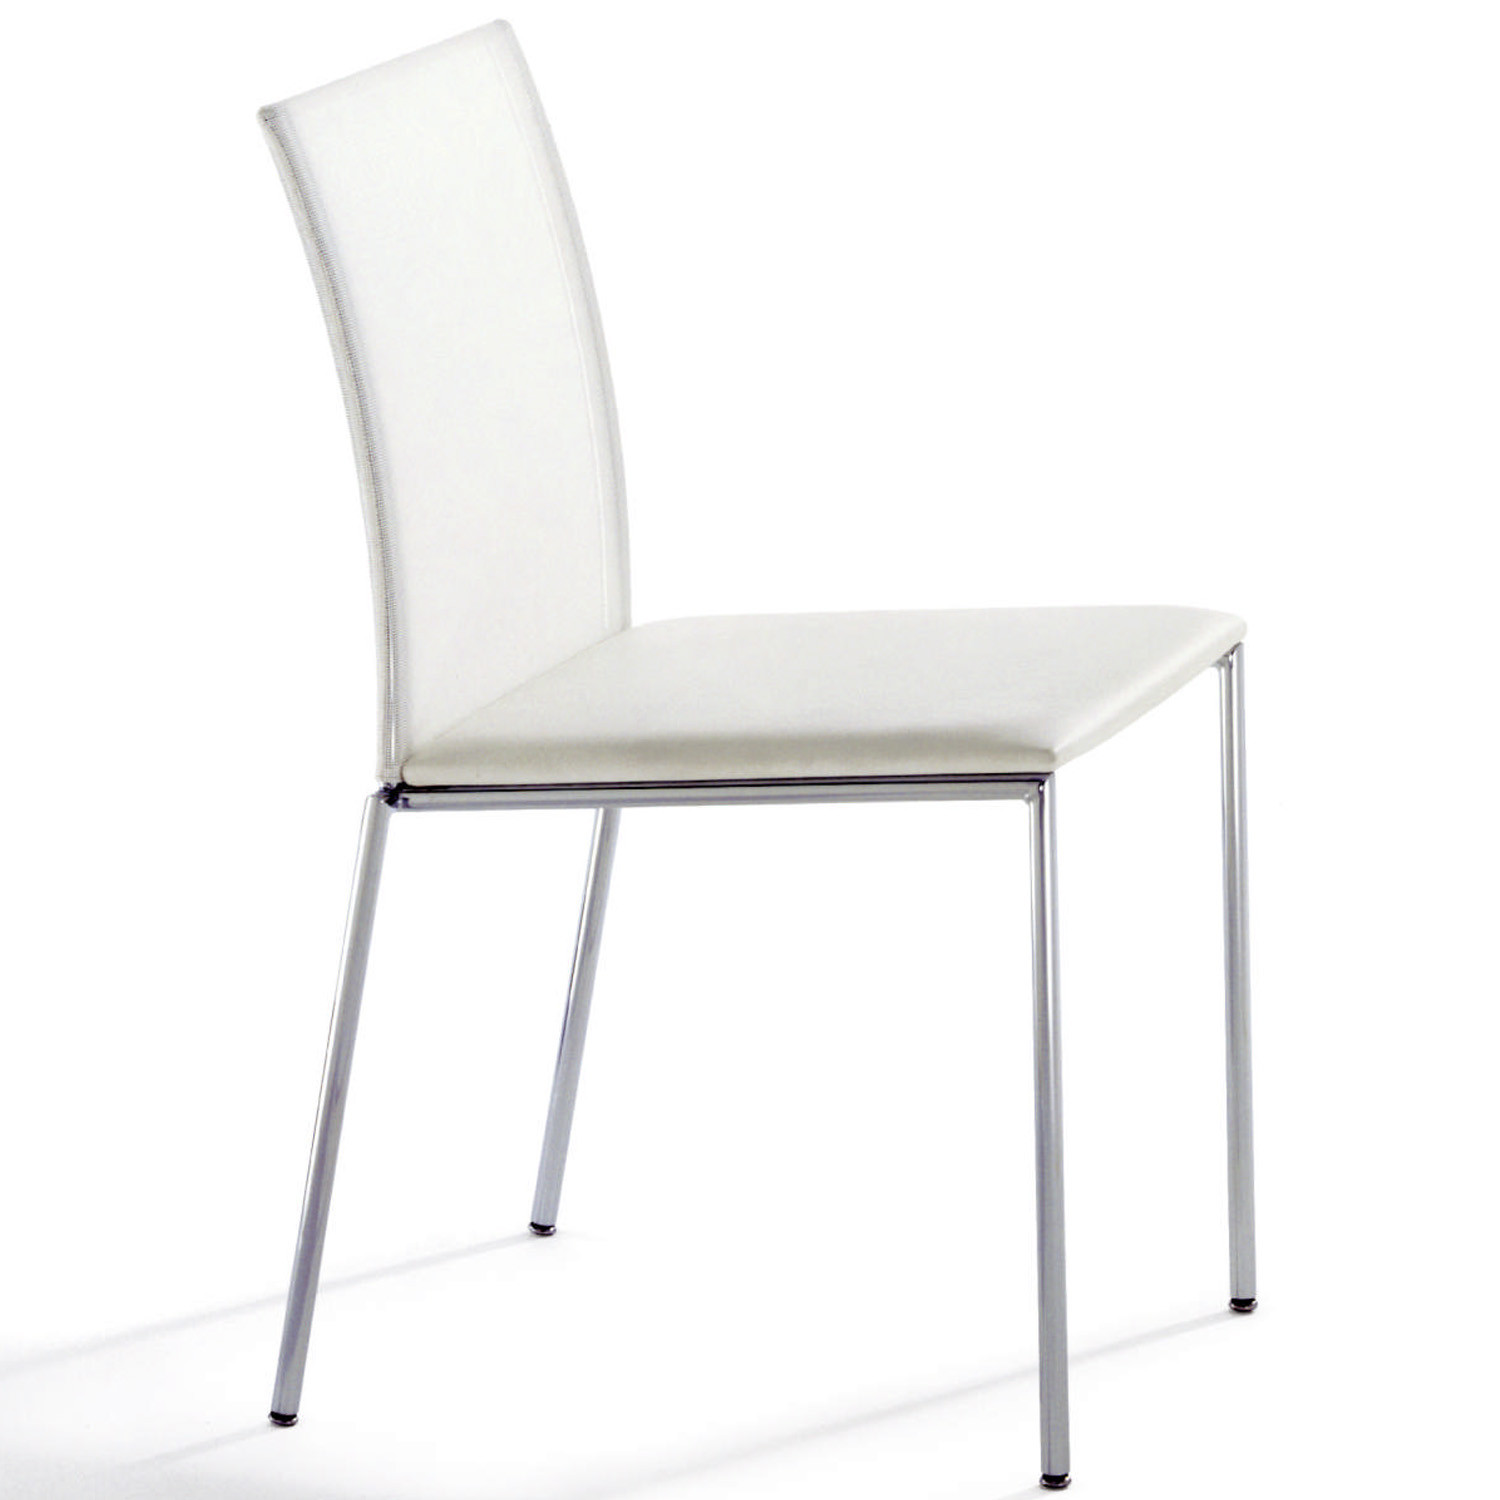 MilanoFlair Chair, mesh bakrest with upholstered seat